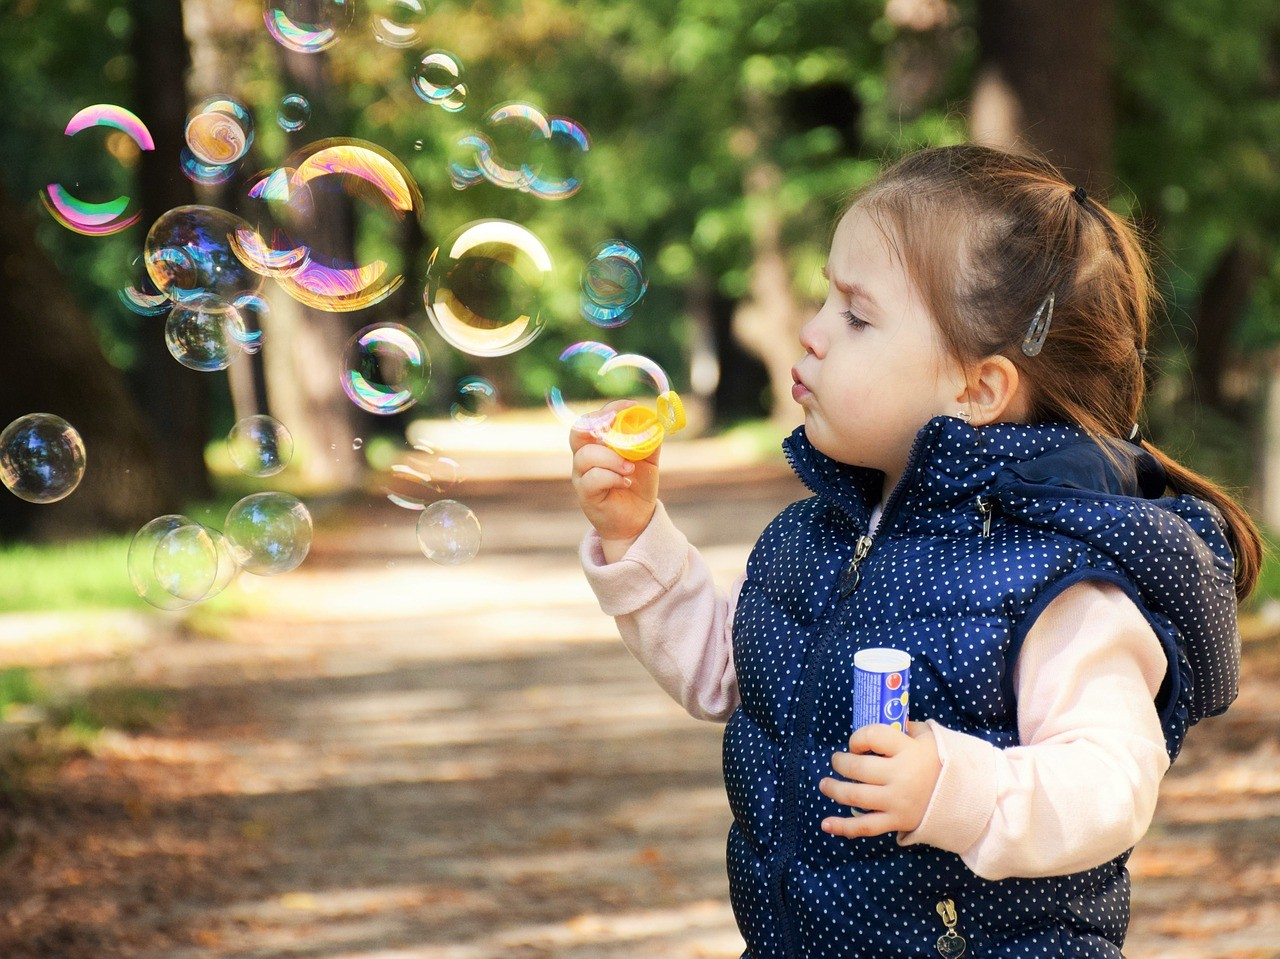 Kids blowing bubbles -- The Hot Mess Press